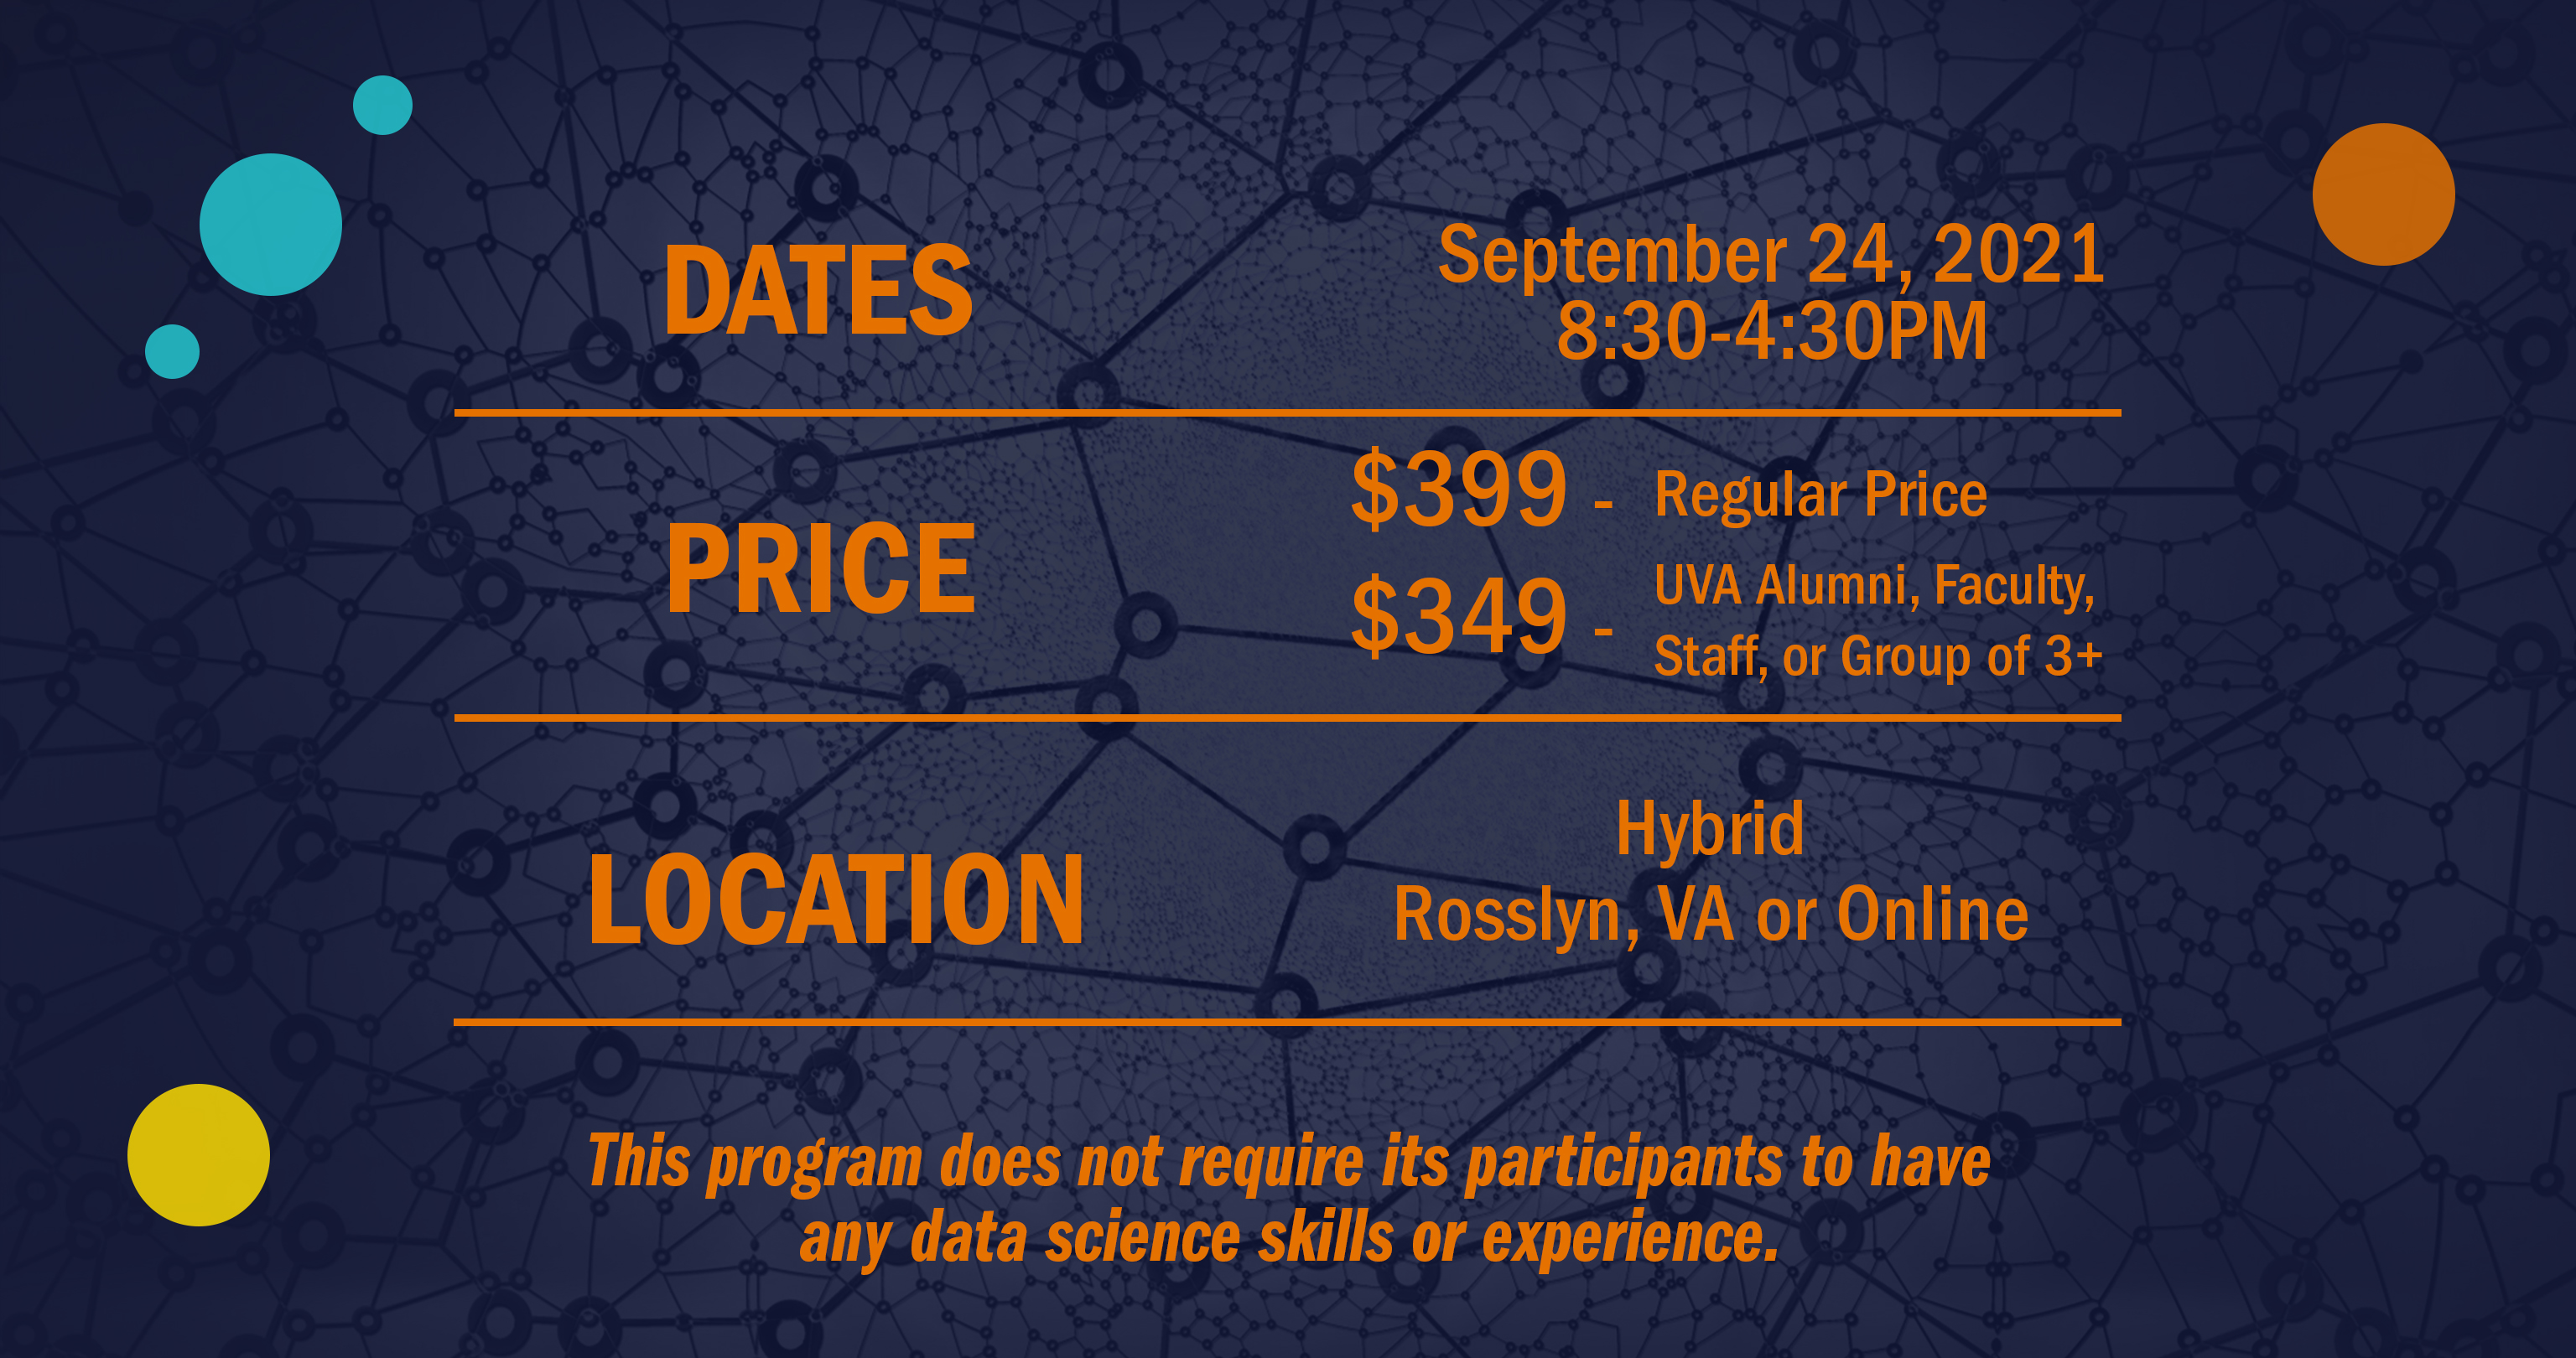 Image with program details: Date April 3-17, 2021. Price 950 - regular price. 875 - UVA Alumni, Faculty, Staff, or Group of 3 +. Location: Hybrid - Rosslyn, VA or Online. This program does not require its participants to have any data science skills or experience.